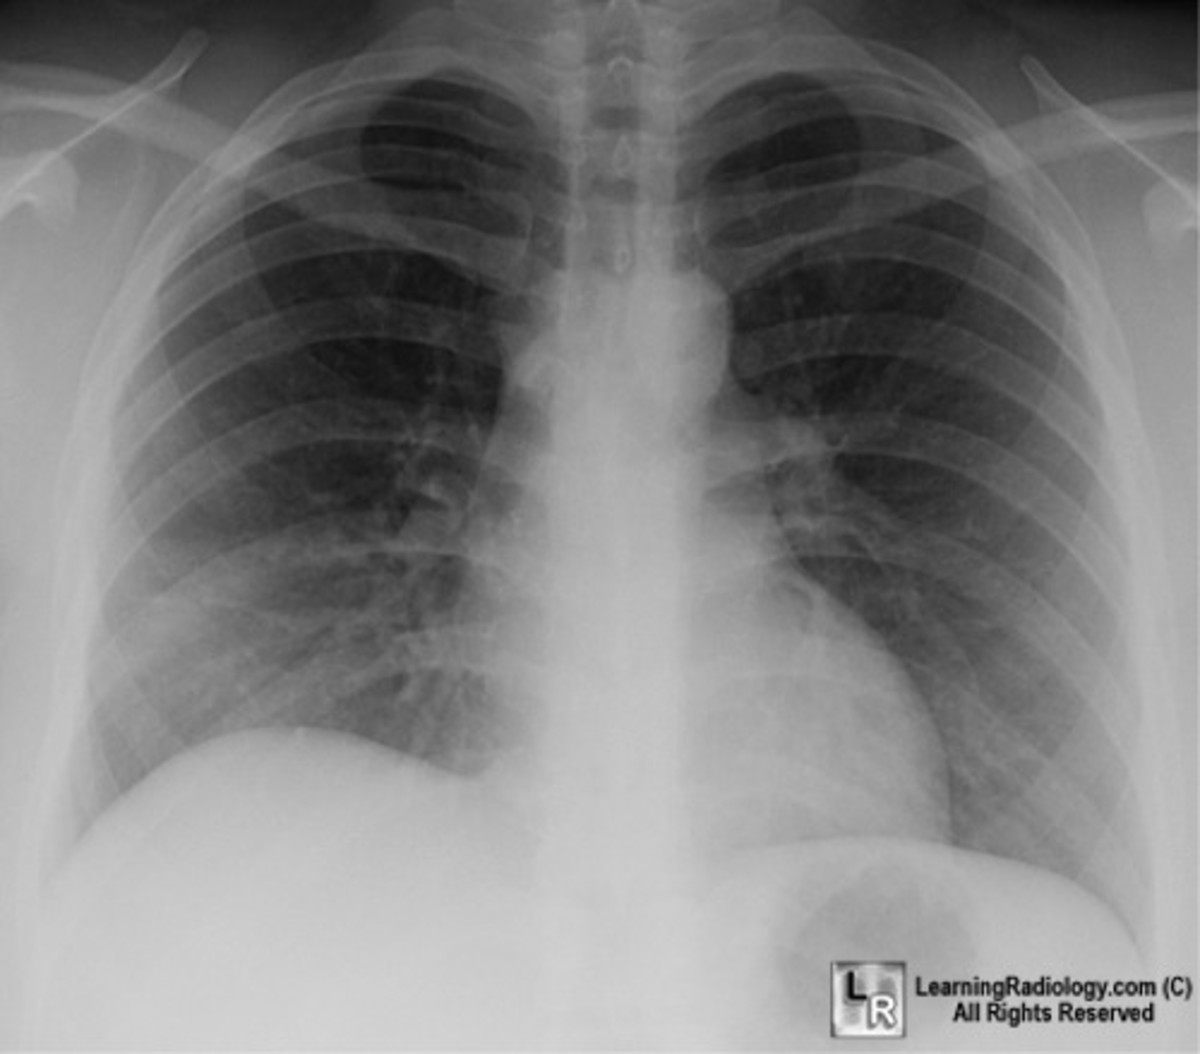 A chest X-ray usually can diagnose atelectasis. Symptoms of a respiratory infection, especially pneumonia, on a child's chest X-ray may indicate a foreign body, the most common cause of obstructive atelectasis in children.